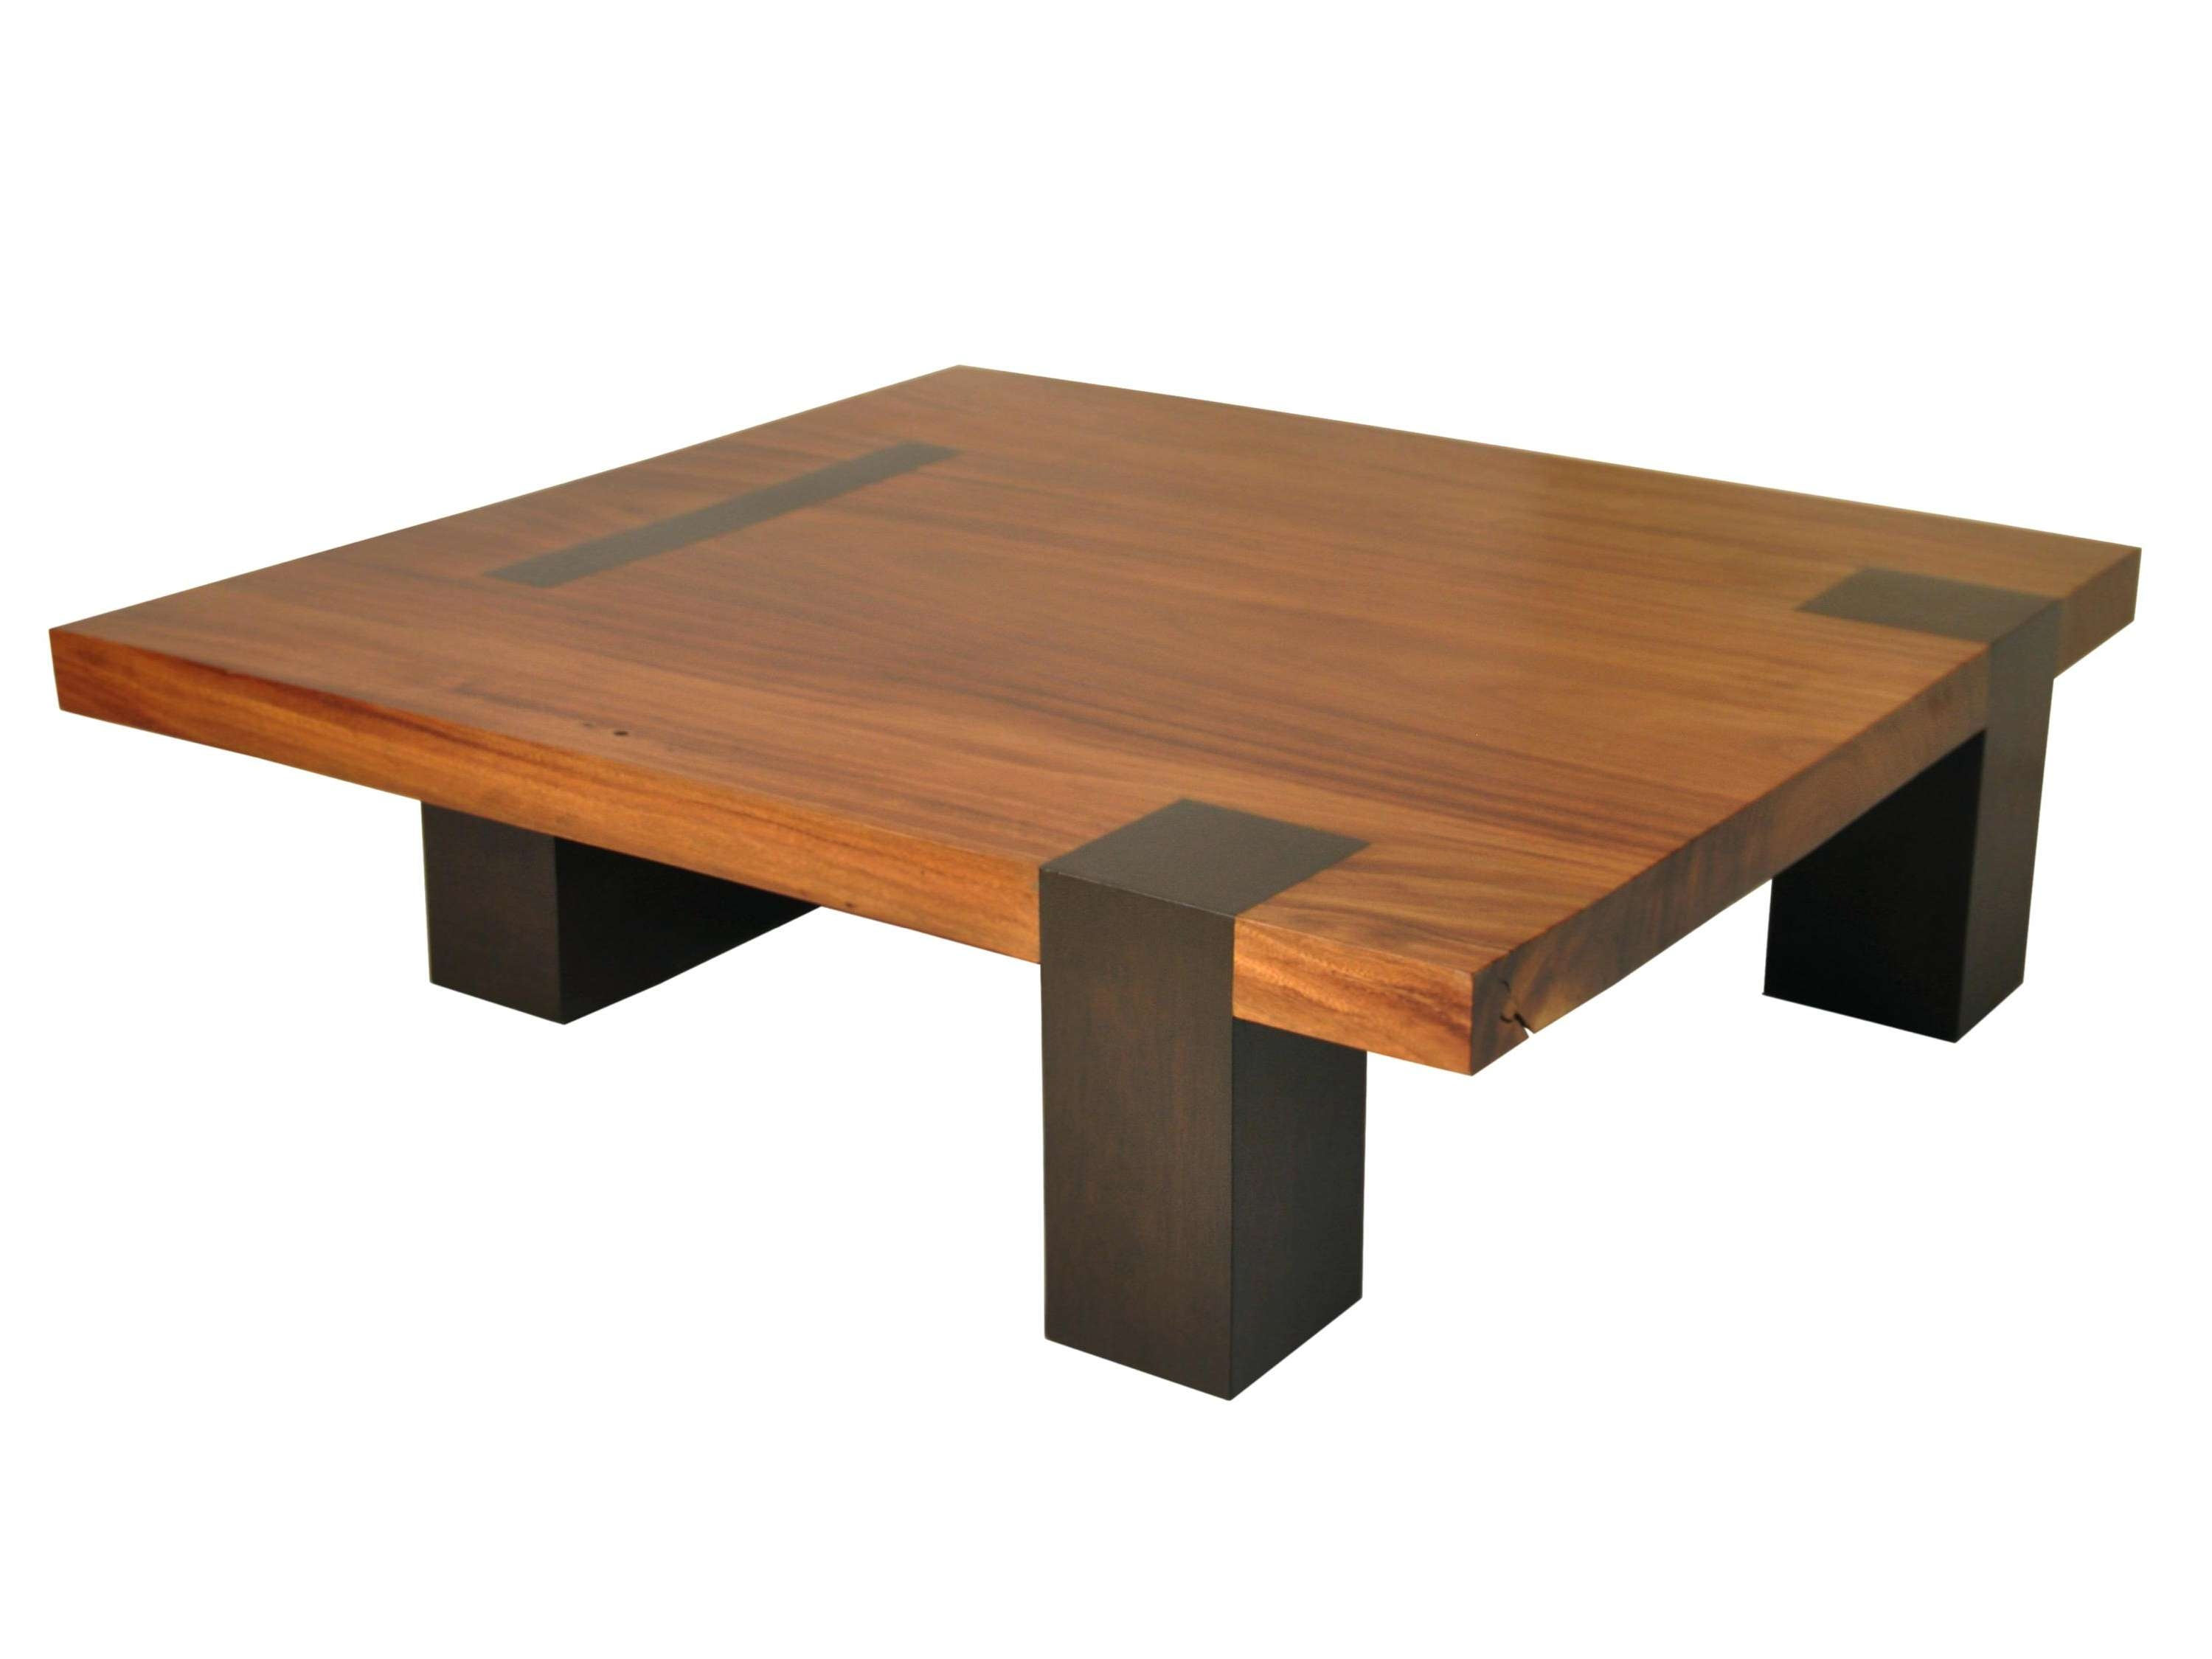 Best And Newest Low Wood Coffee Tables In Coffee Table : Wonderful Tea Table Online Low Coffee Table Black (View 1 of 20)